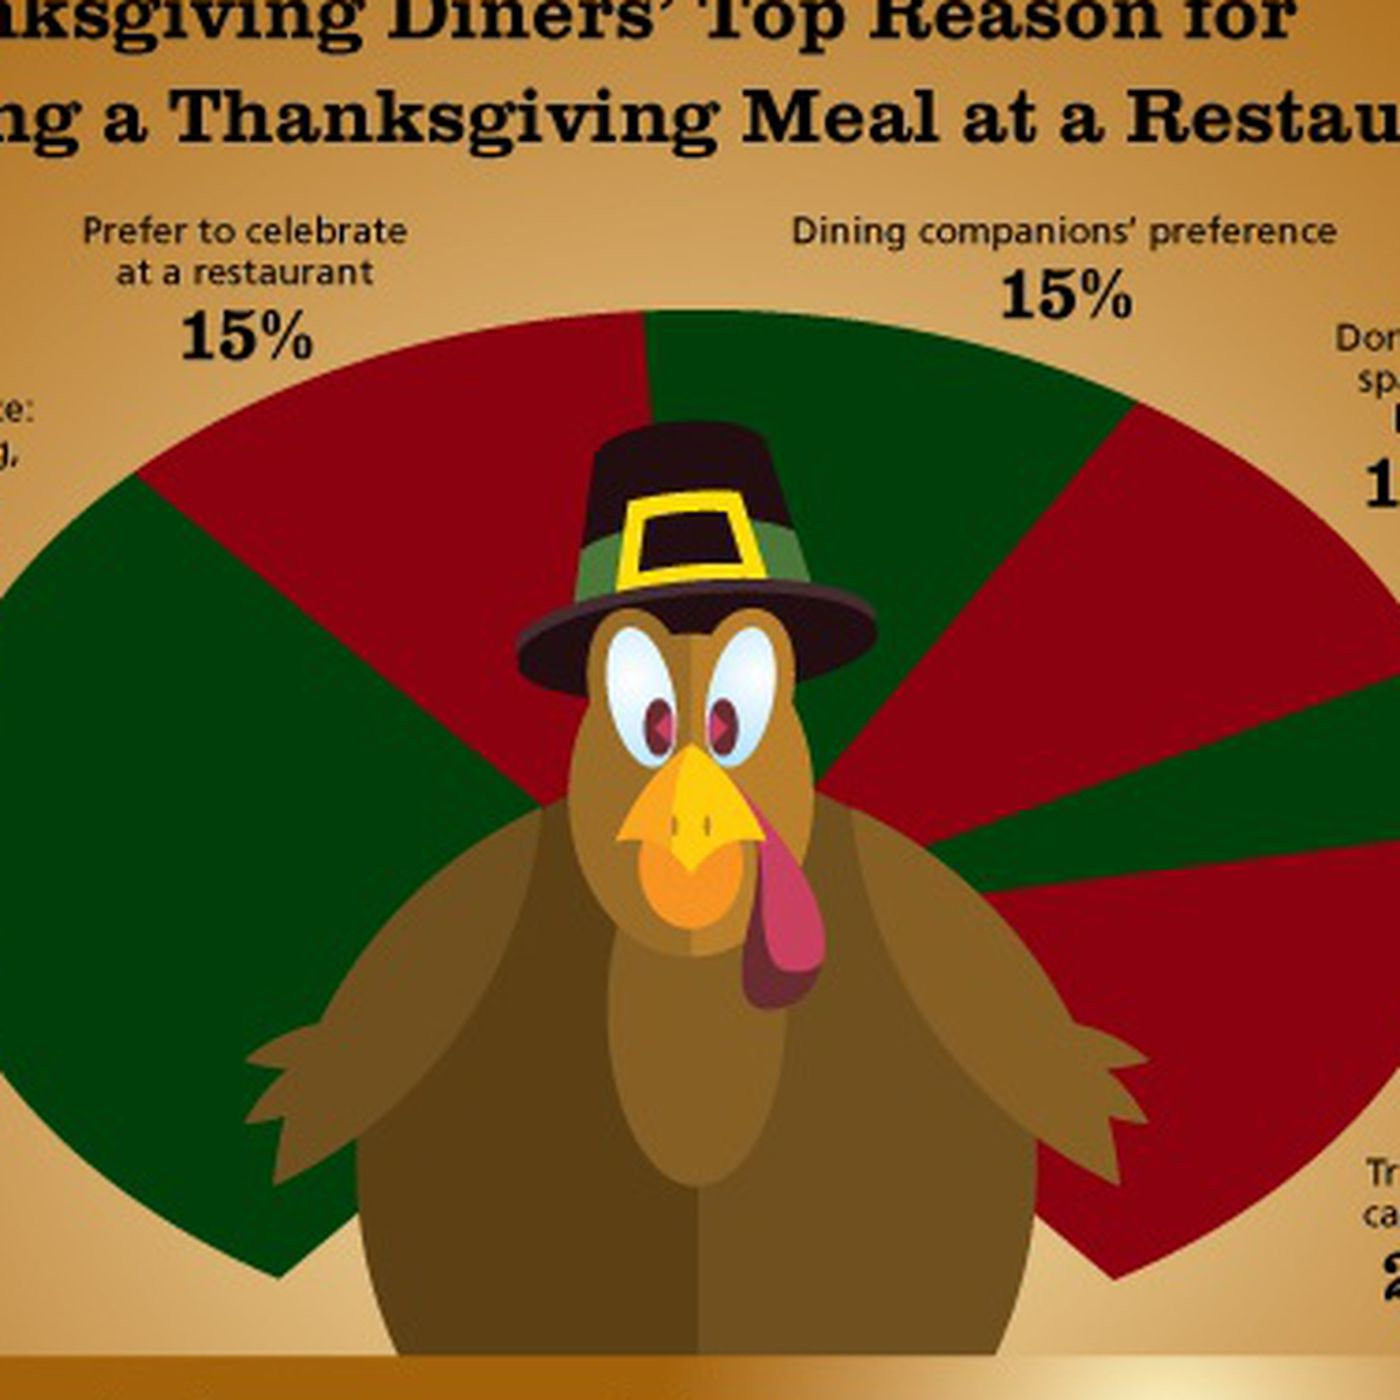 14 Million People To Eat Thanksgiving At Restaurants Eater